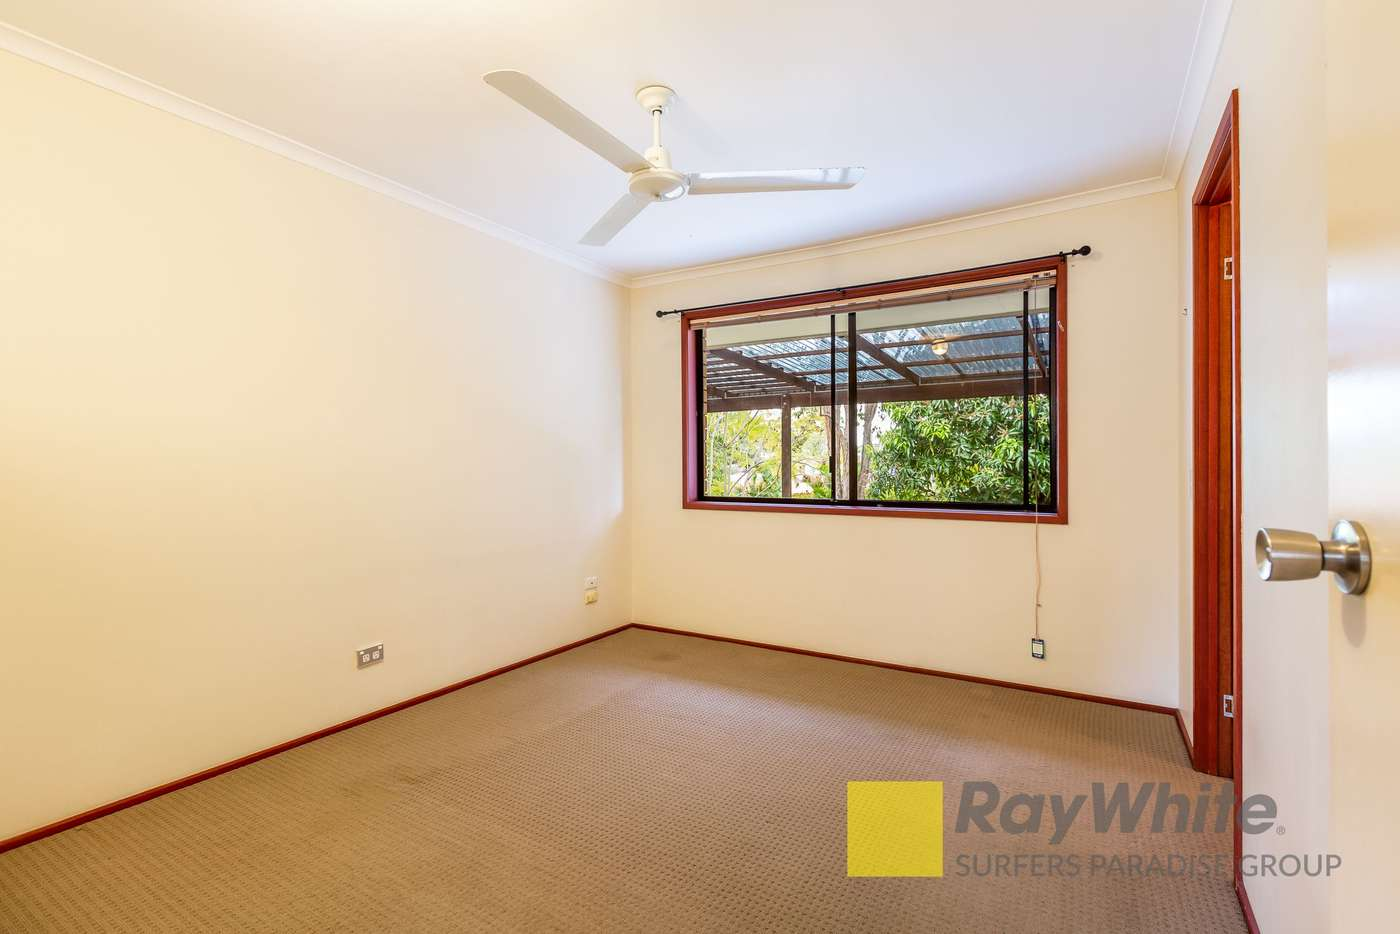 Sixth view of Homely house listing, 19 Tamworth Drive, Helensvale QLD 4212